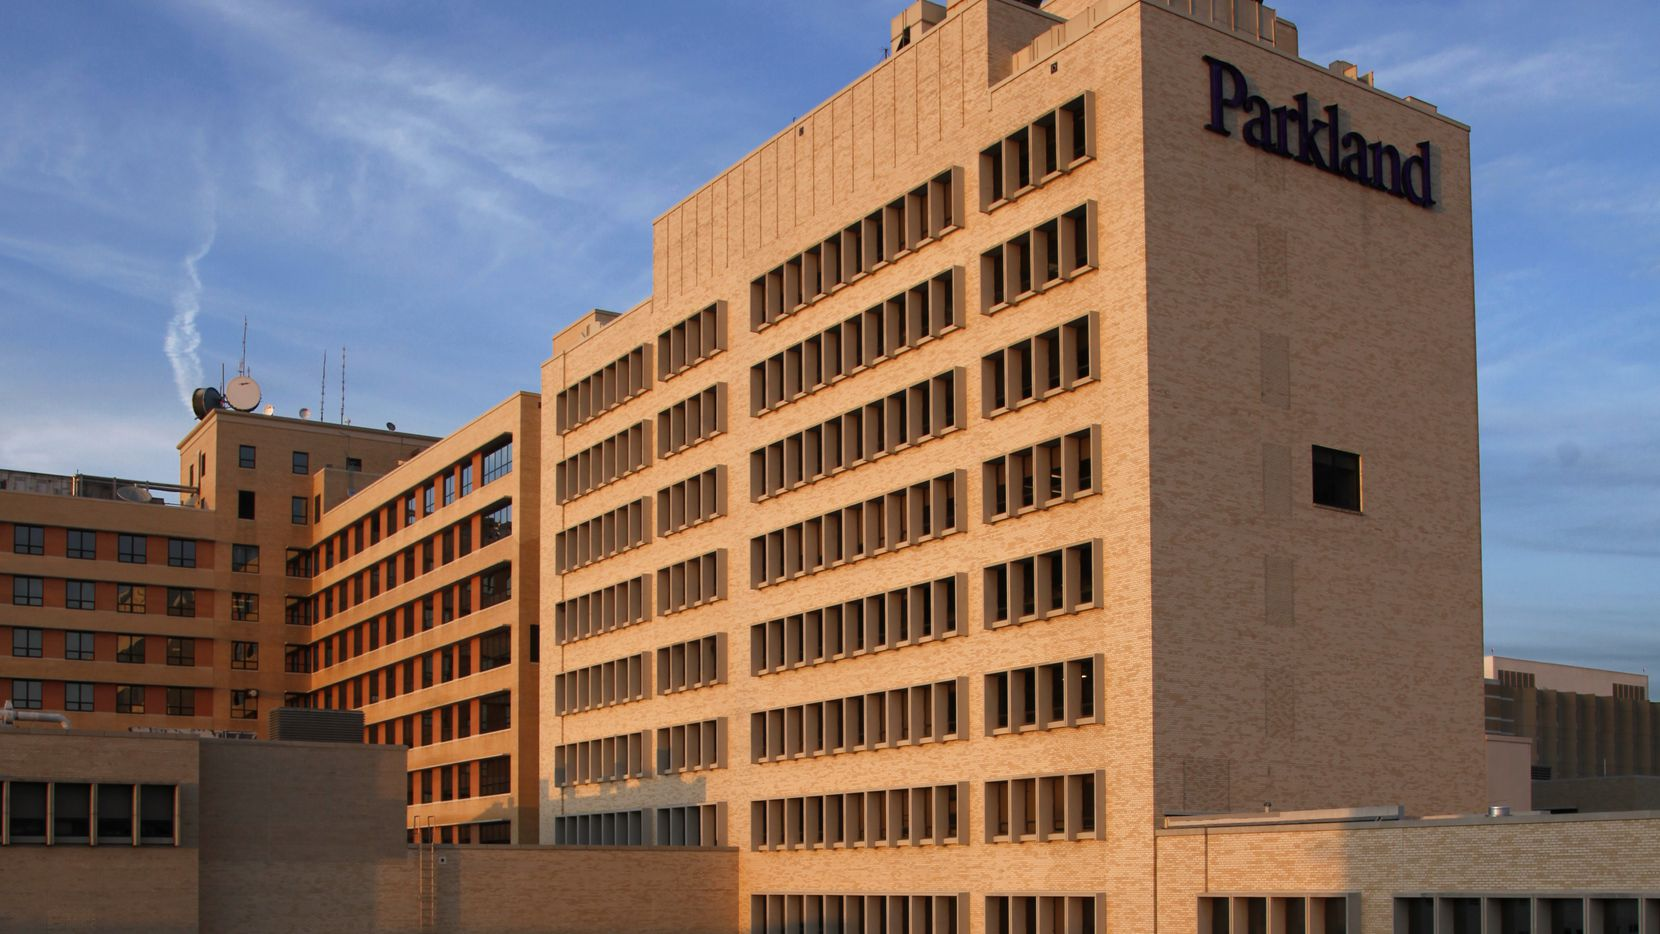 Developer Sam Ware missed a deadline to purchase the old Parkland Hospital complex northwest of downtown Dallas.